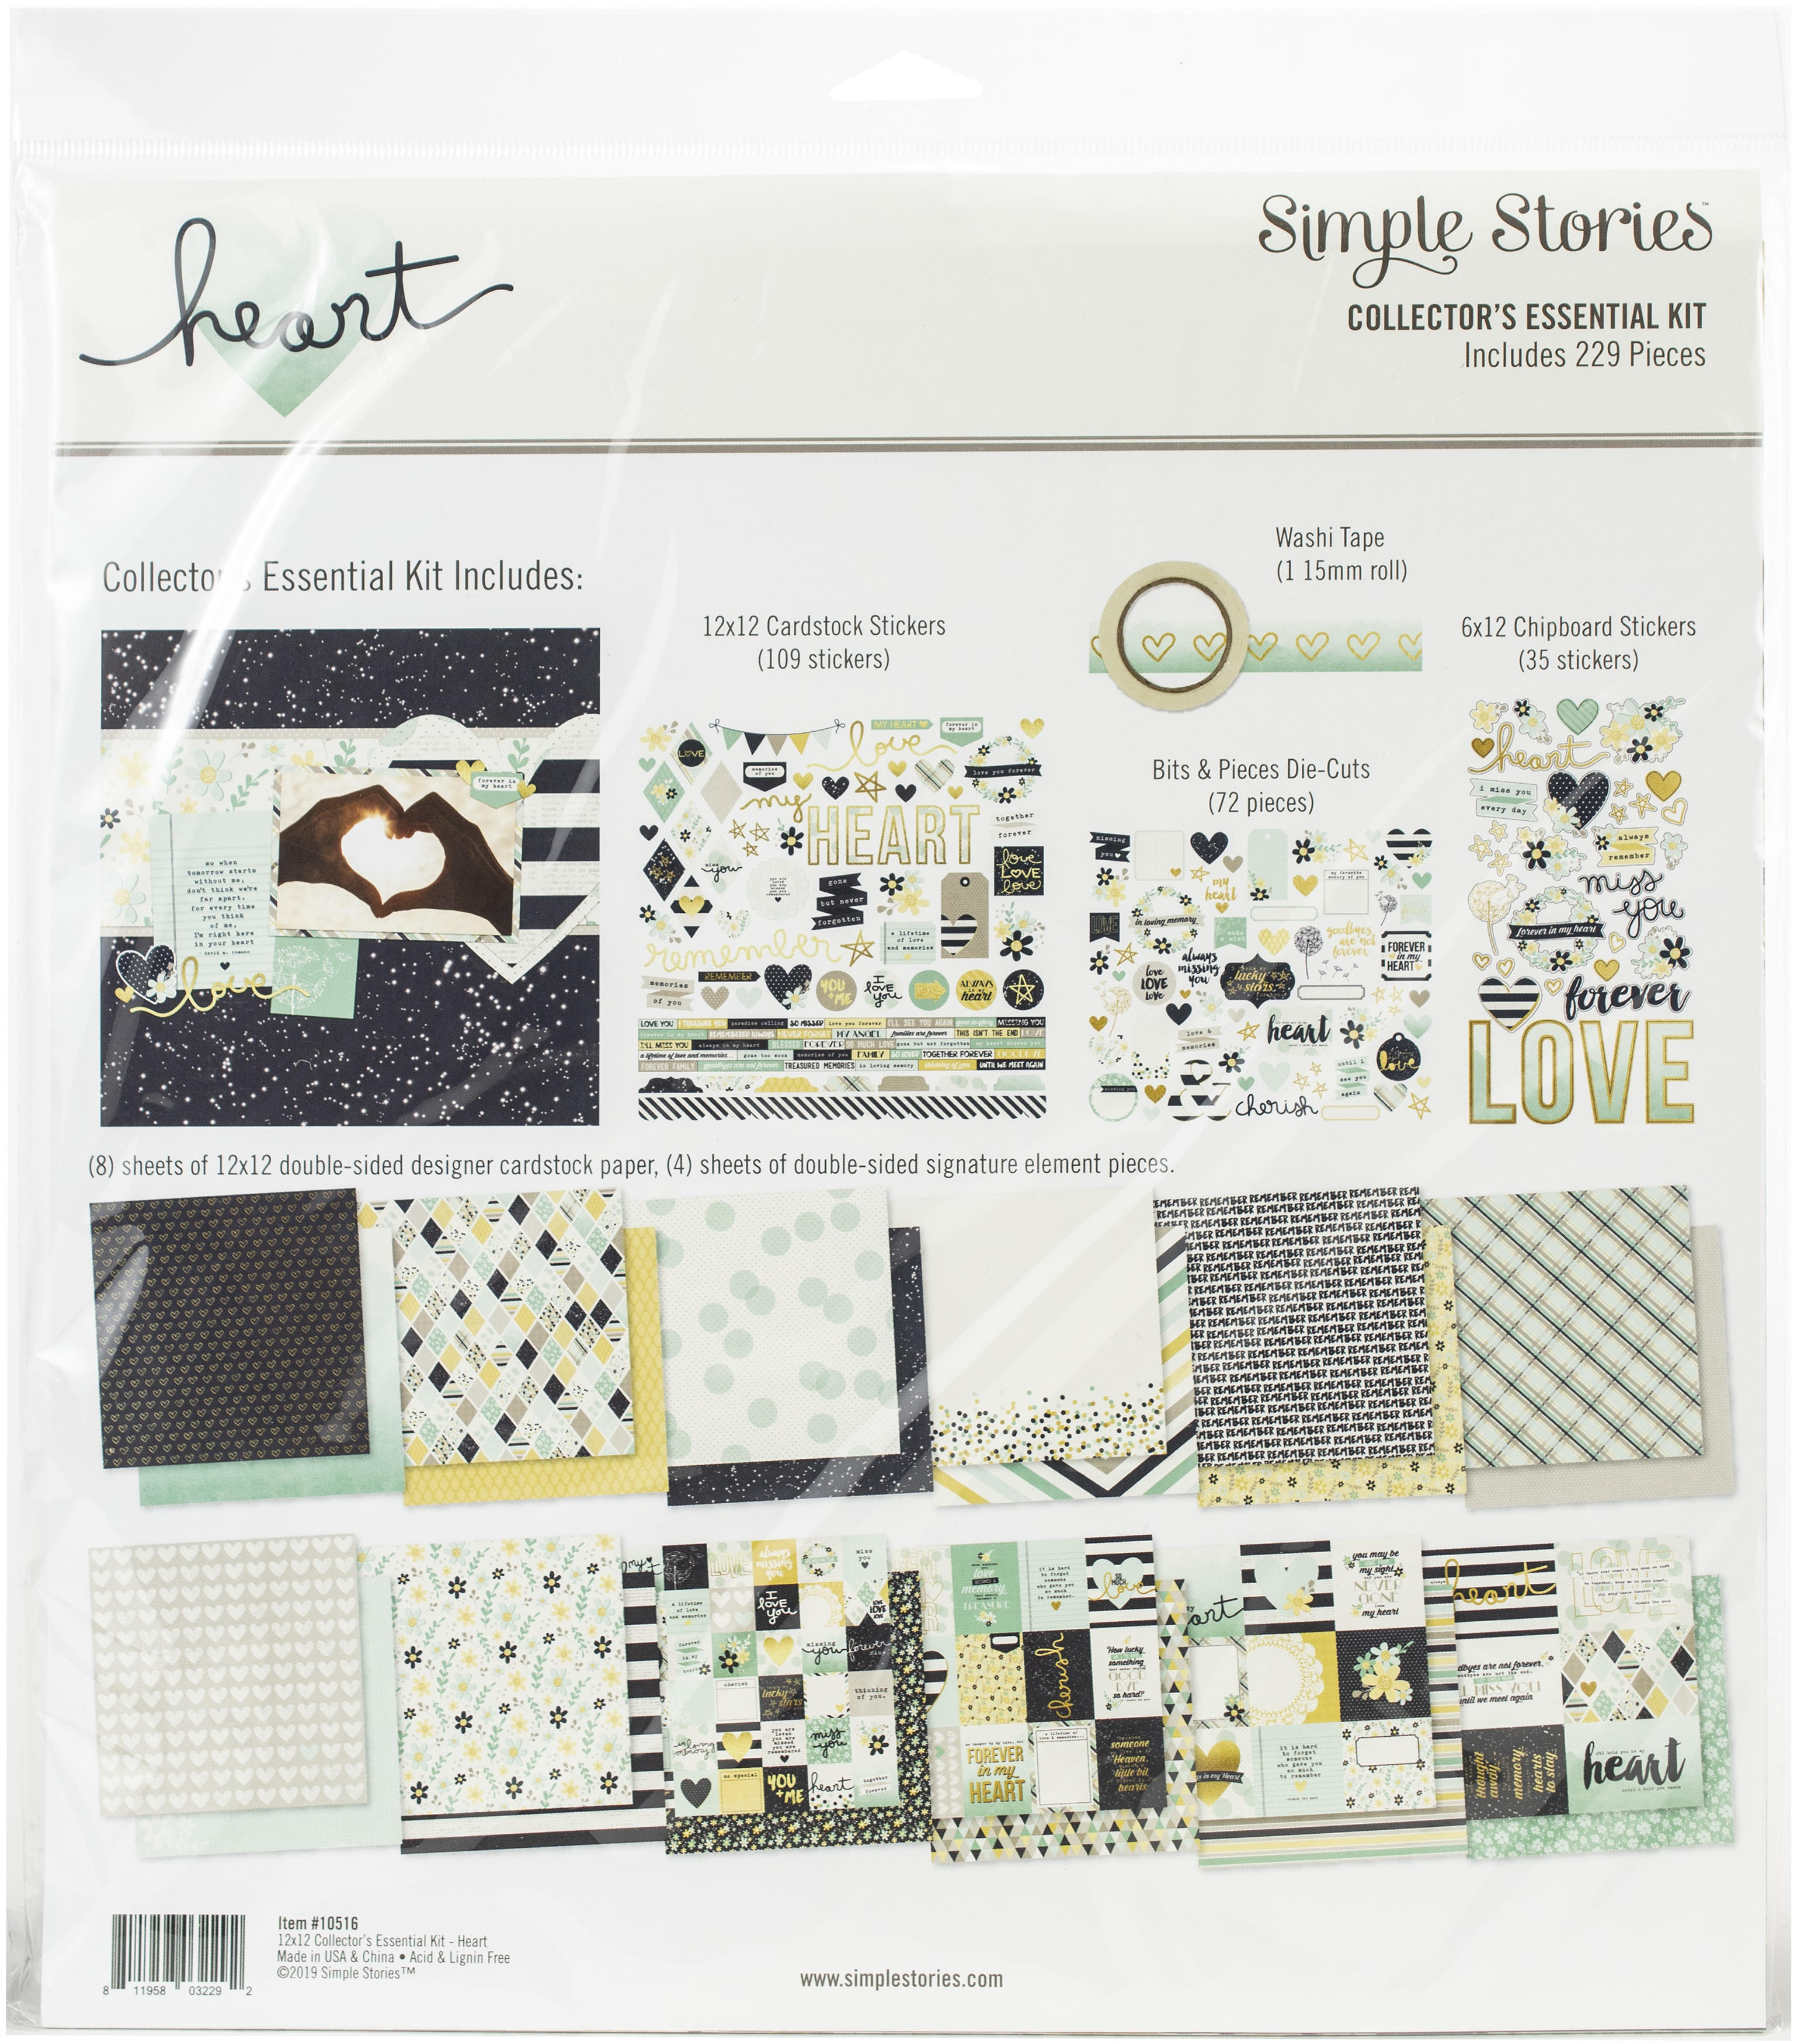 Simple Stories Heart Collectors Kit